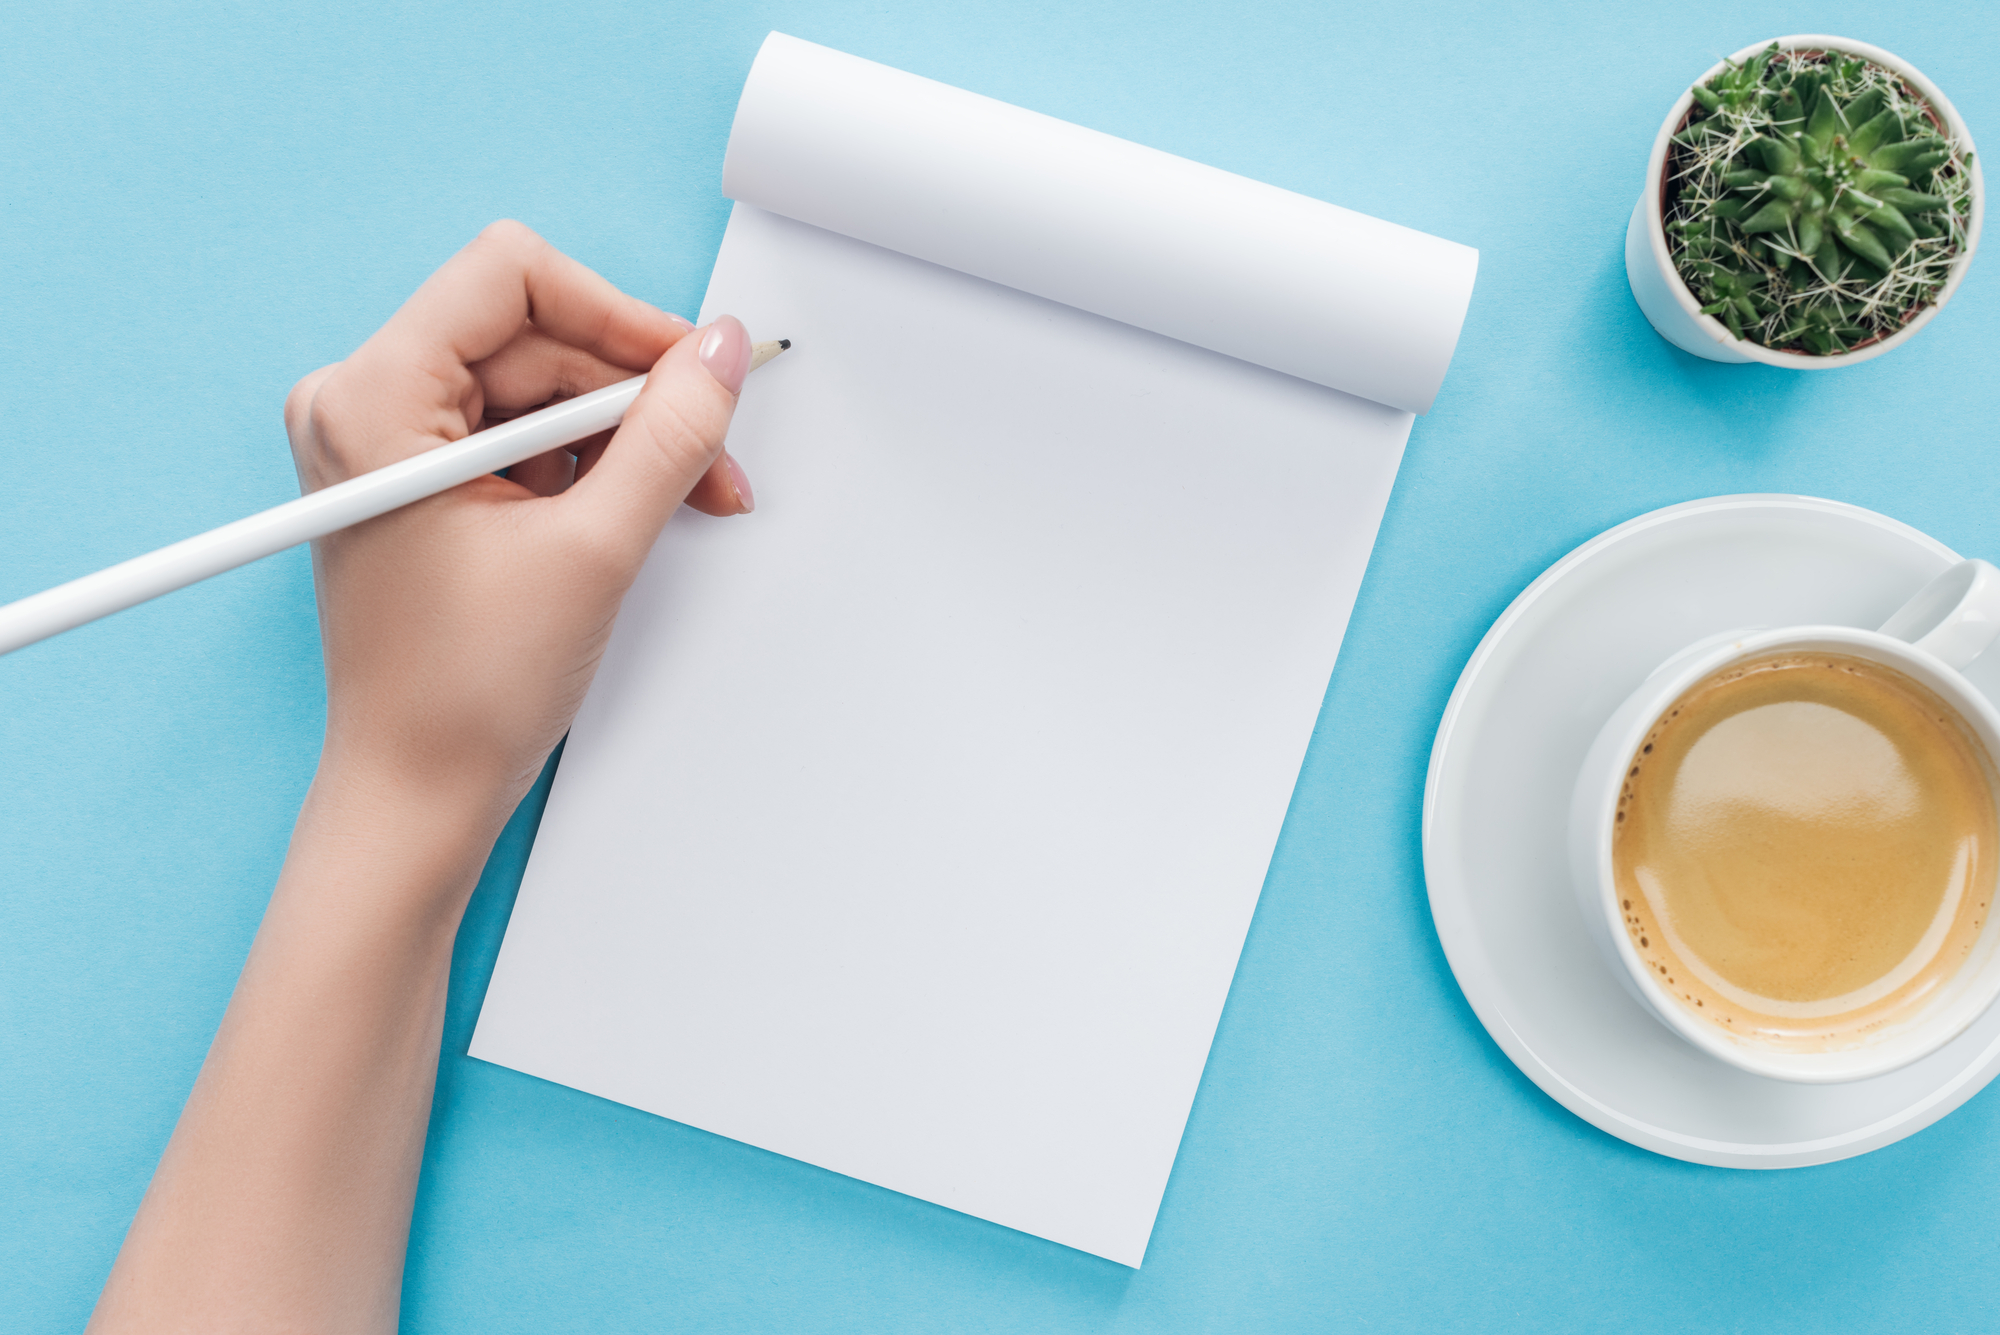 Cropped view of person writing in blank notebook with cup of coffee on blue background